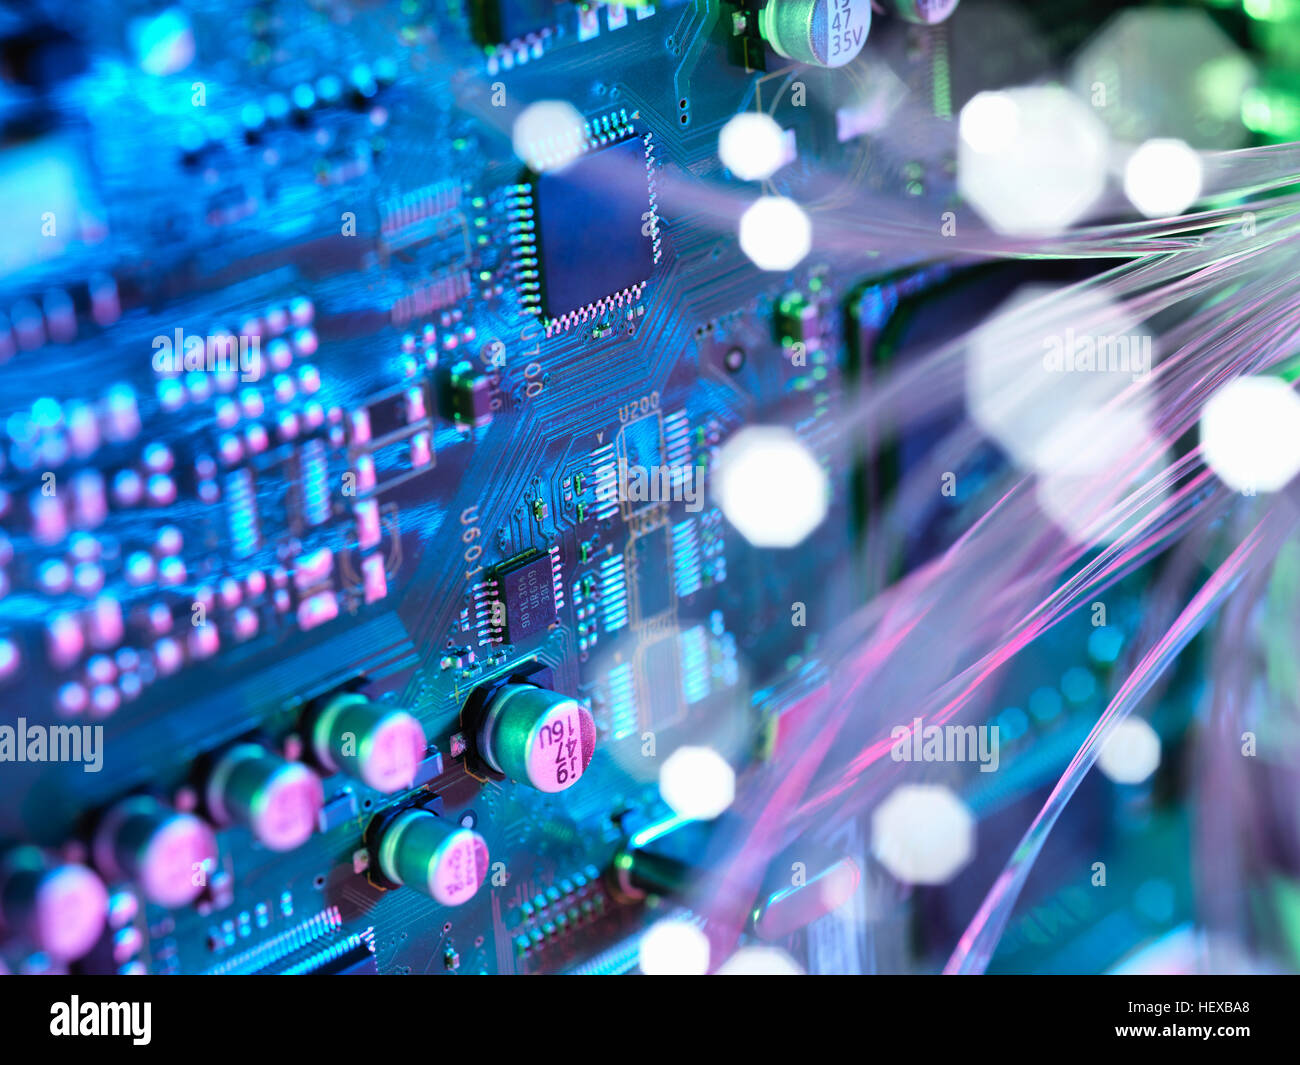 Fibre optics shooting past electronics of broadband hub - Stock Image